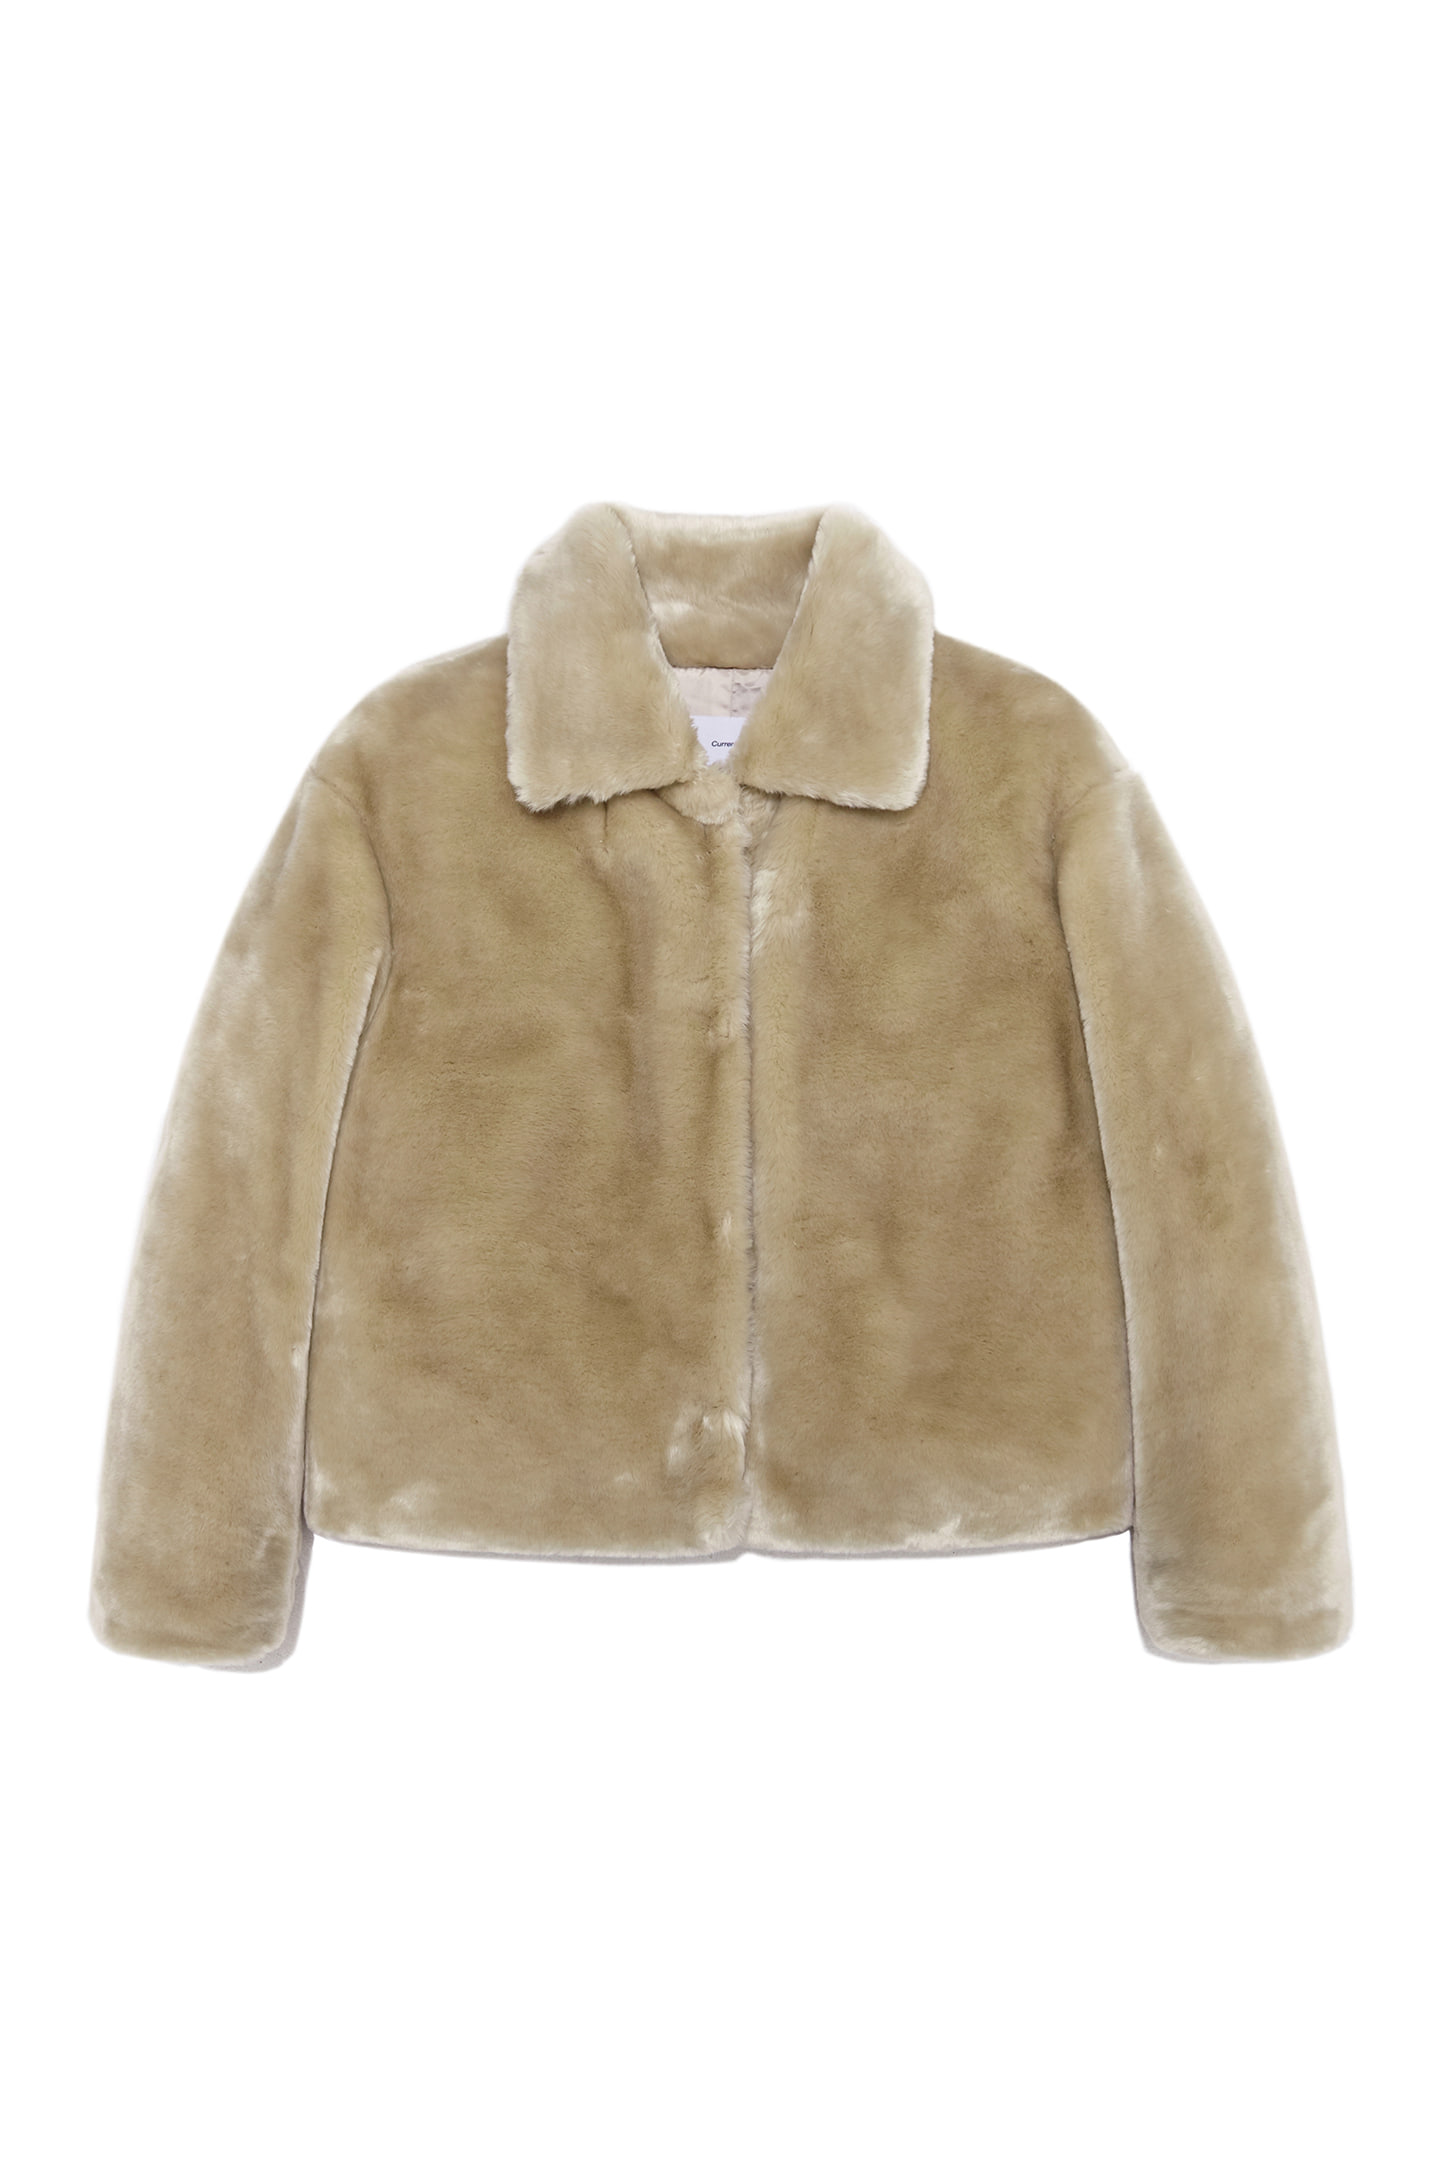 Fur Crop Jacket Women [Beige]